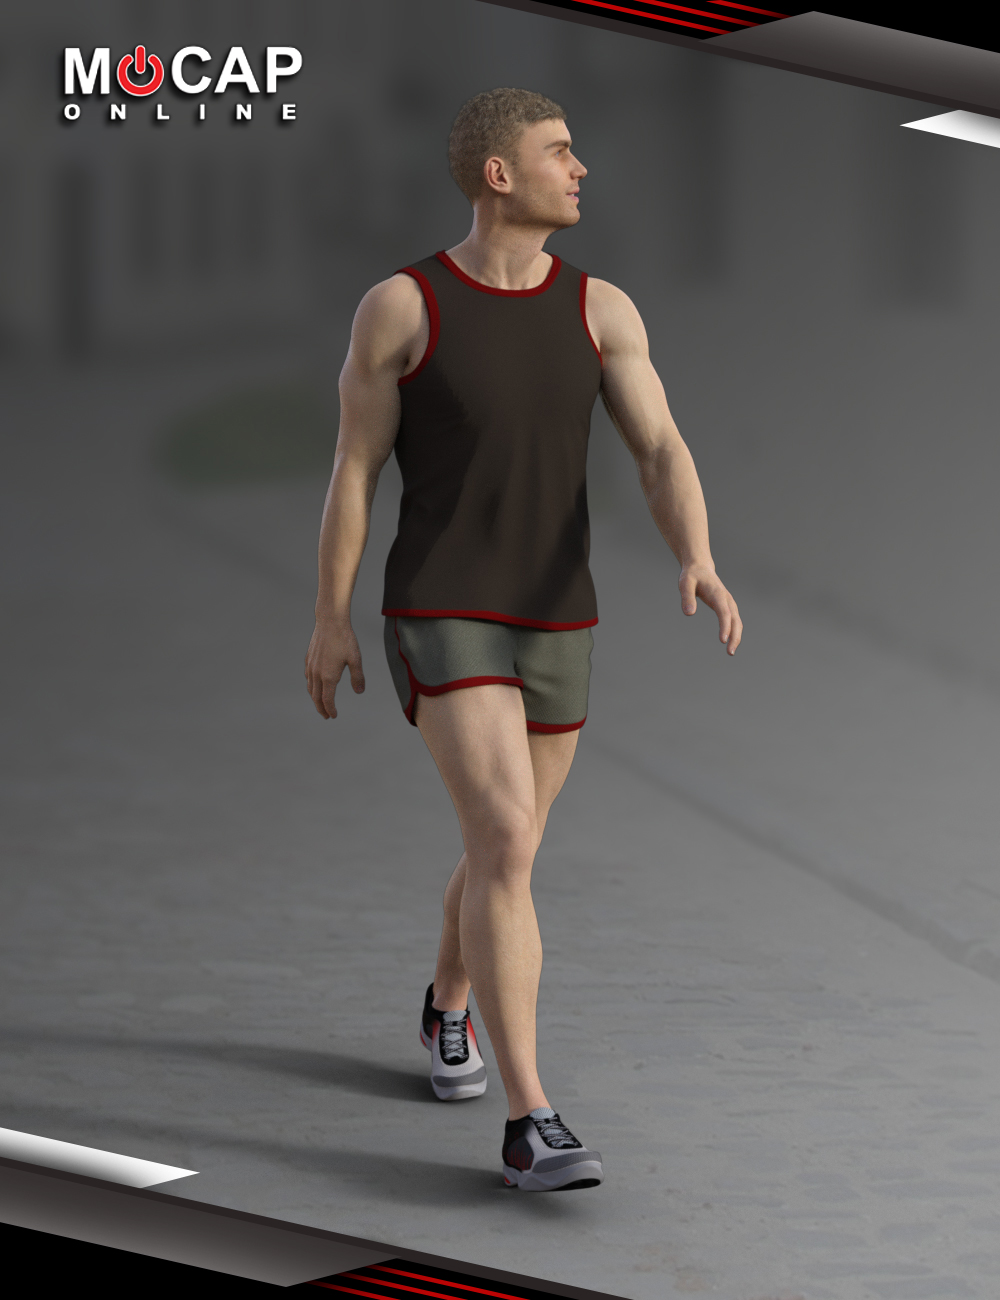 Walks Animation Collection - Michael 8 by: Mocap Online, 3D Models by Daz 3D